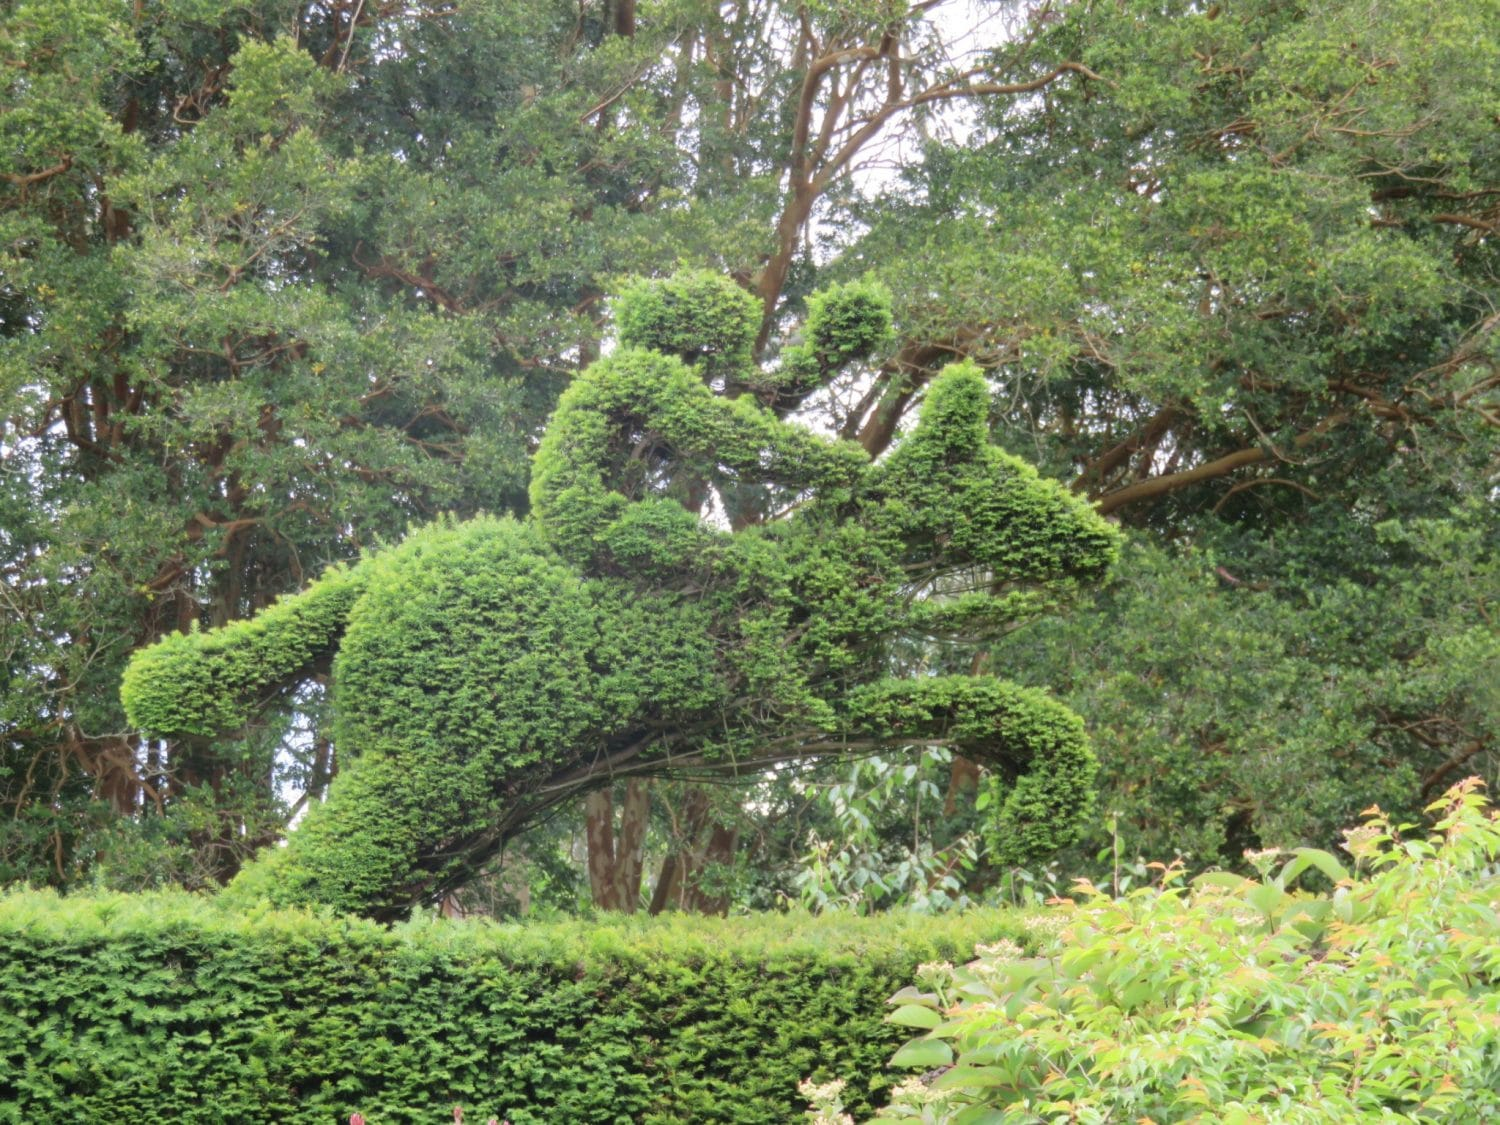 Northern Ireland Weekend Break - Folk lore topiary